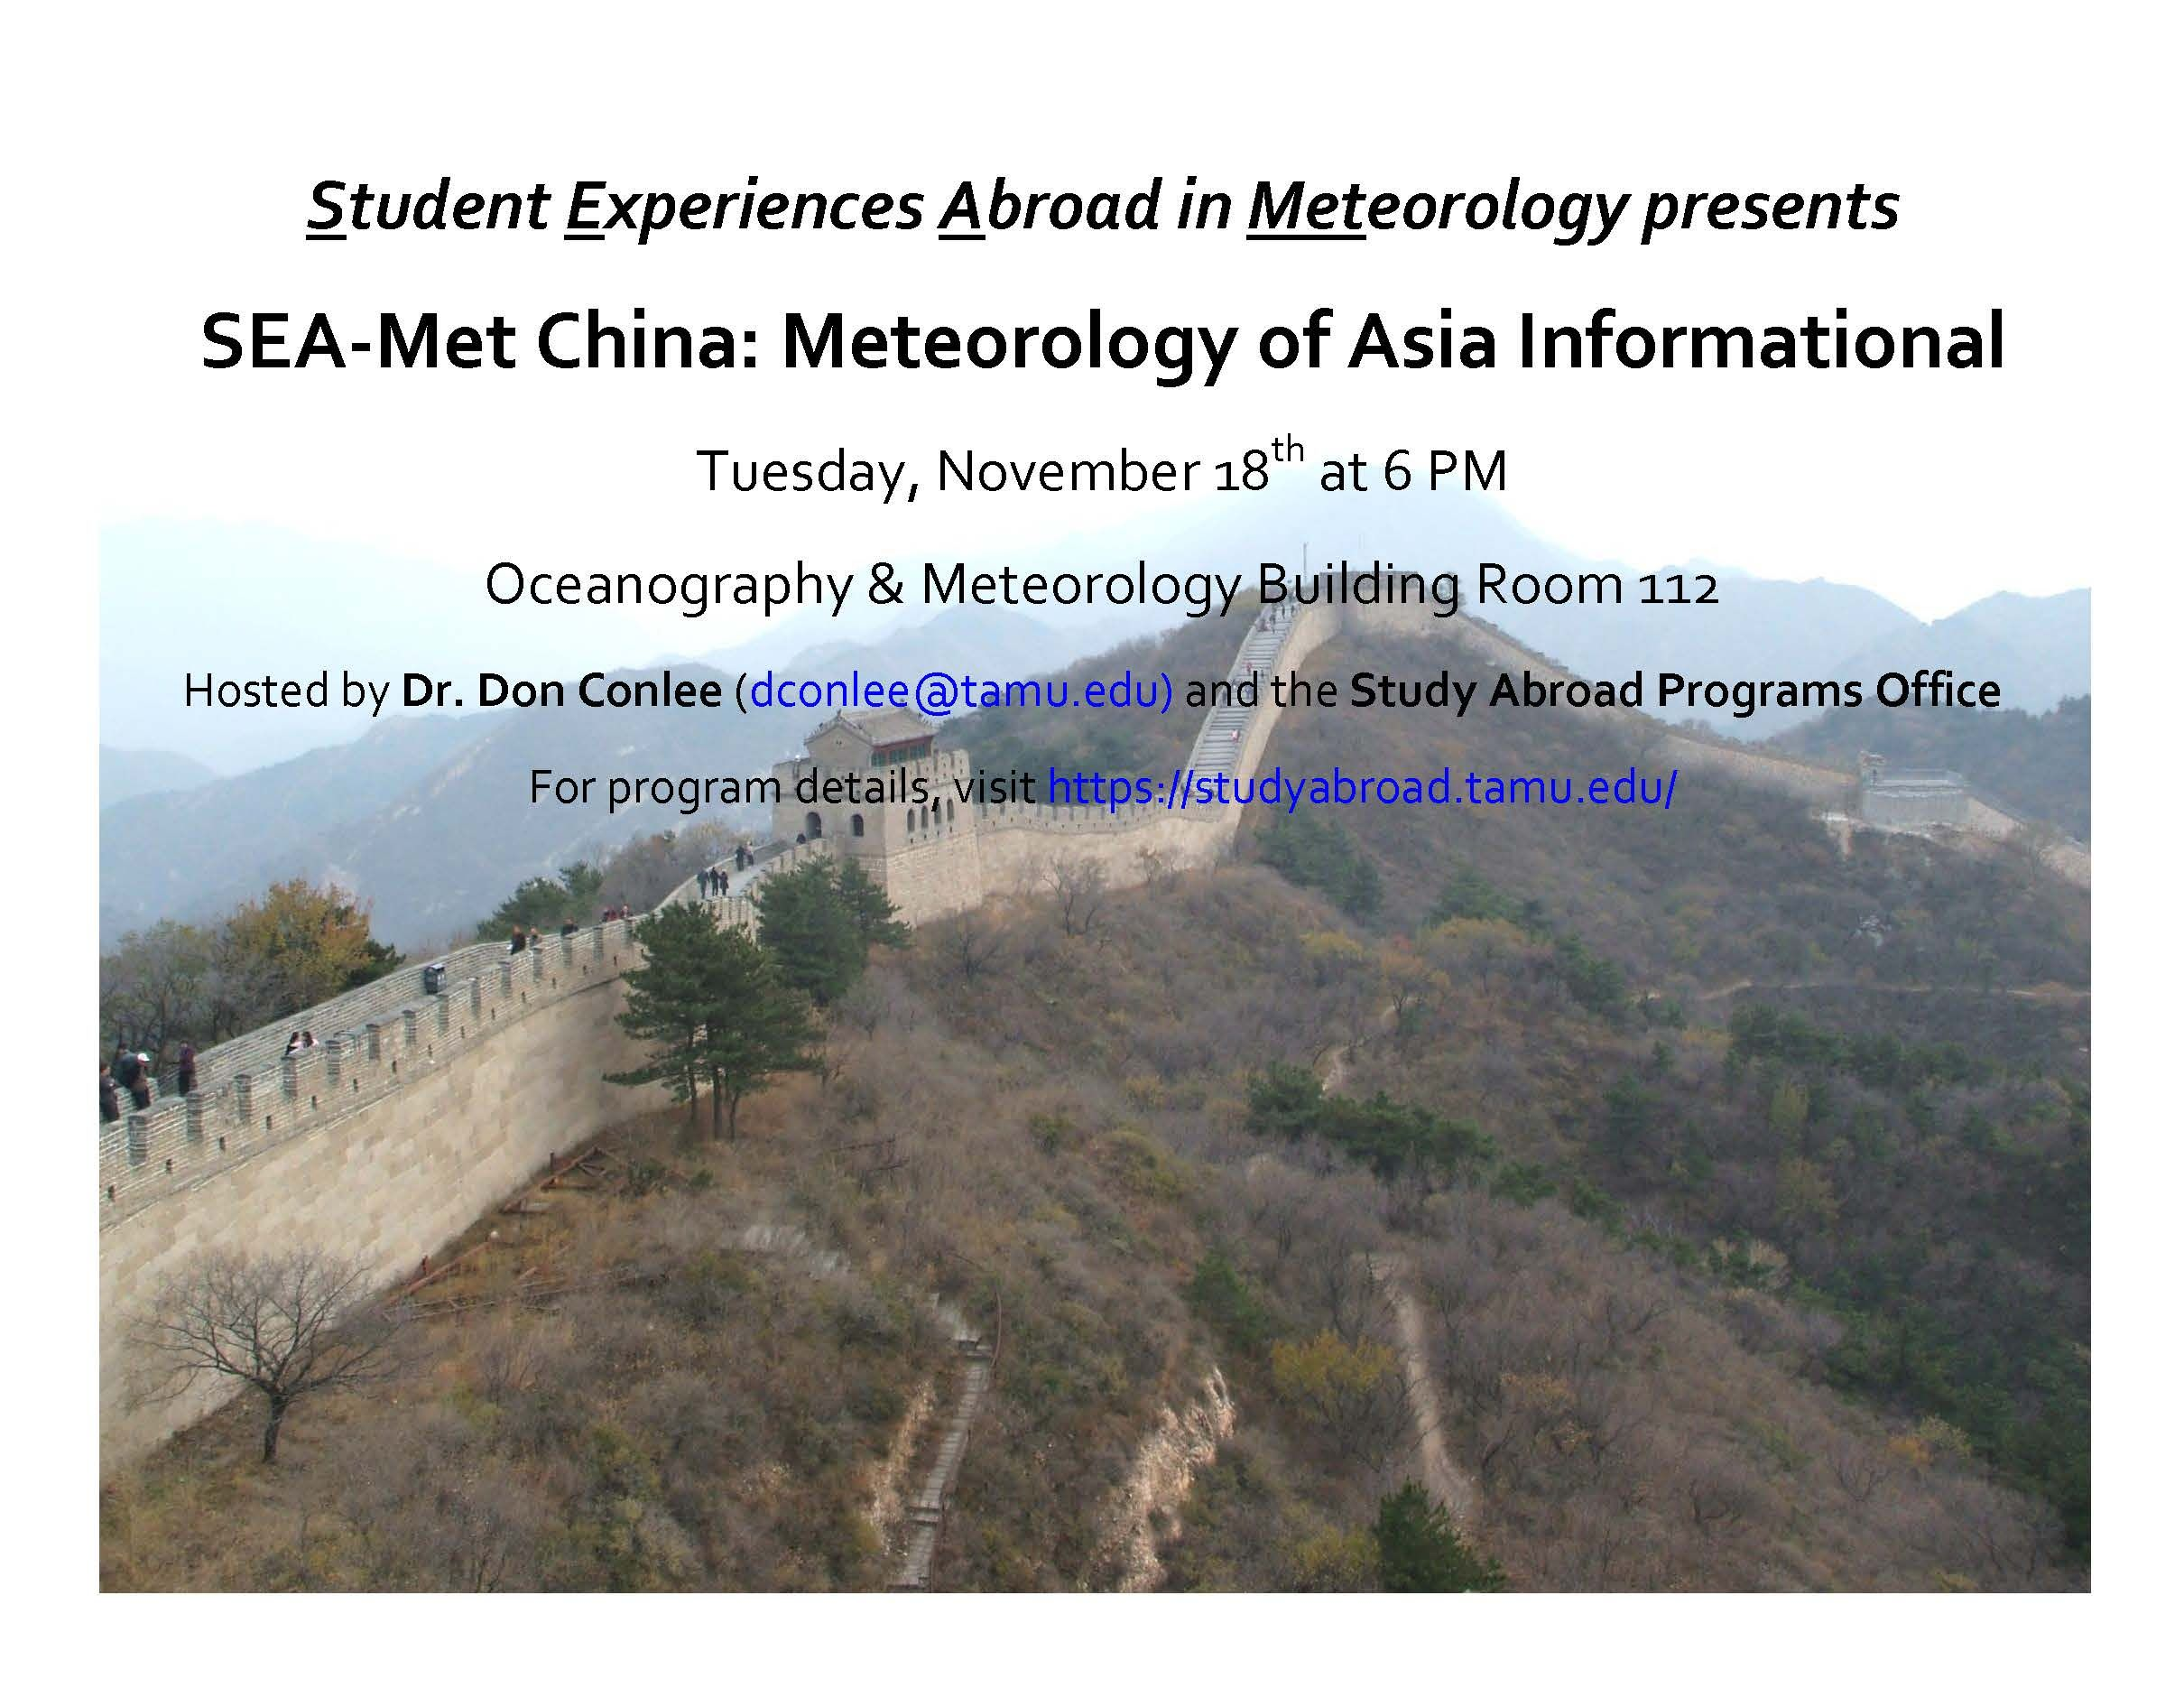 The China S E A Meteorology Summer 2015 Informational Is Tuesday November 18th 6 7 Pm In O M 112 This Maym Weather And Climate Coastal Cities Meteorology